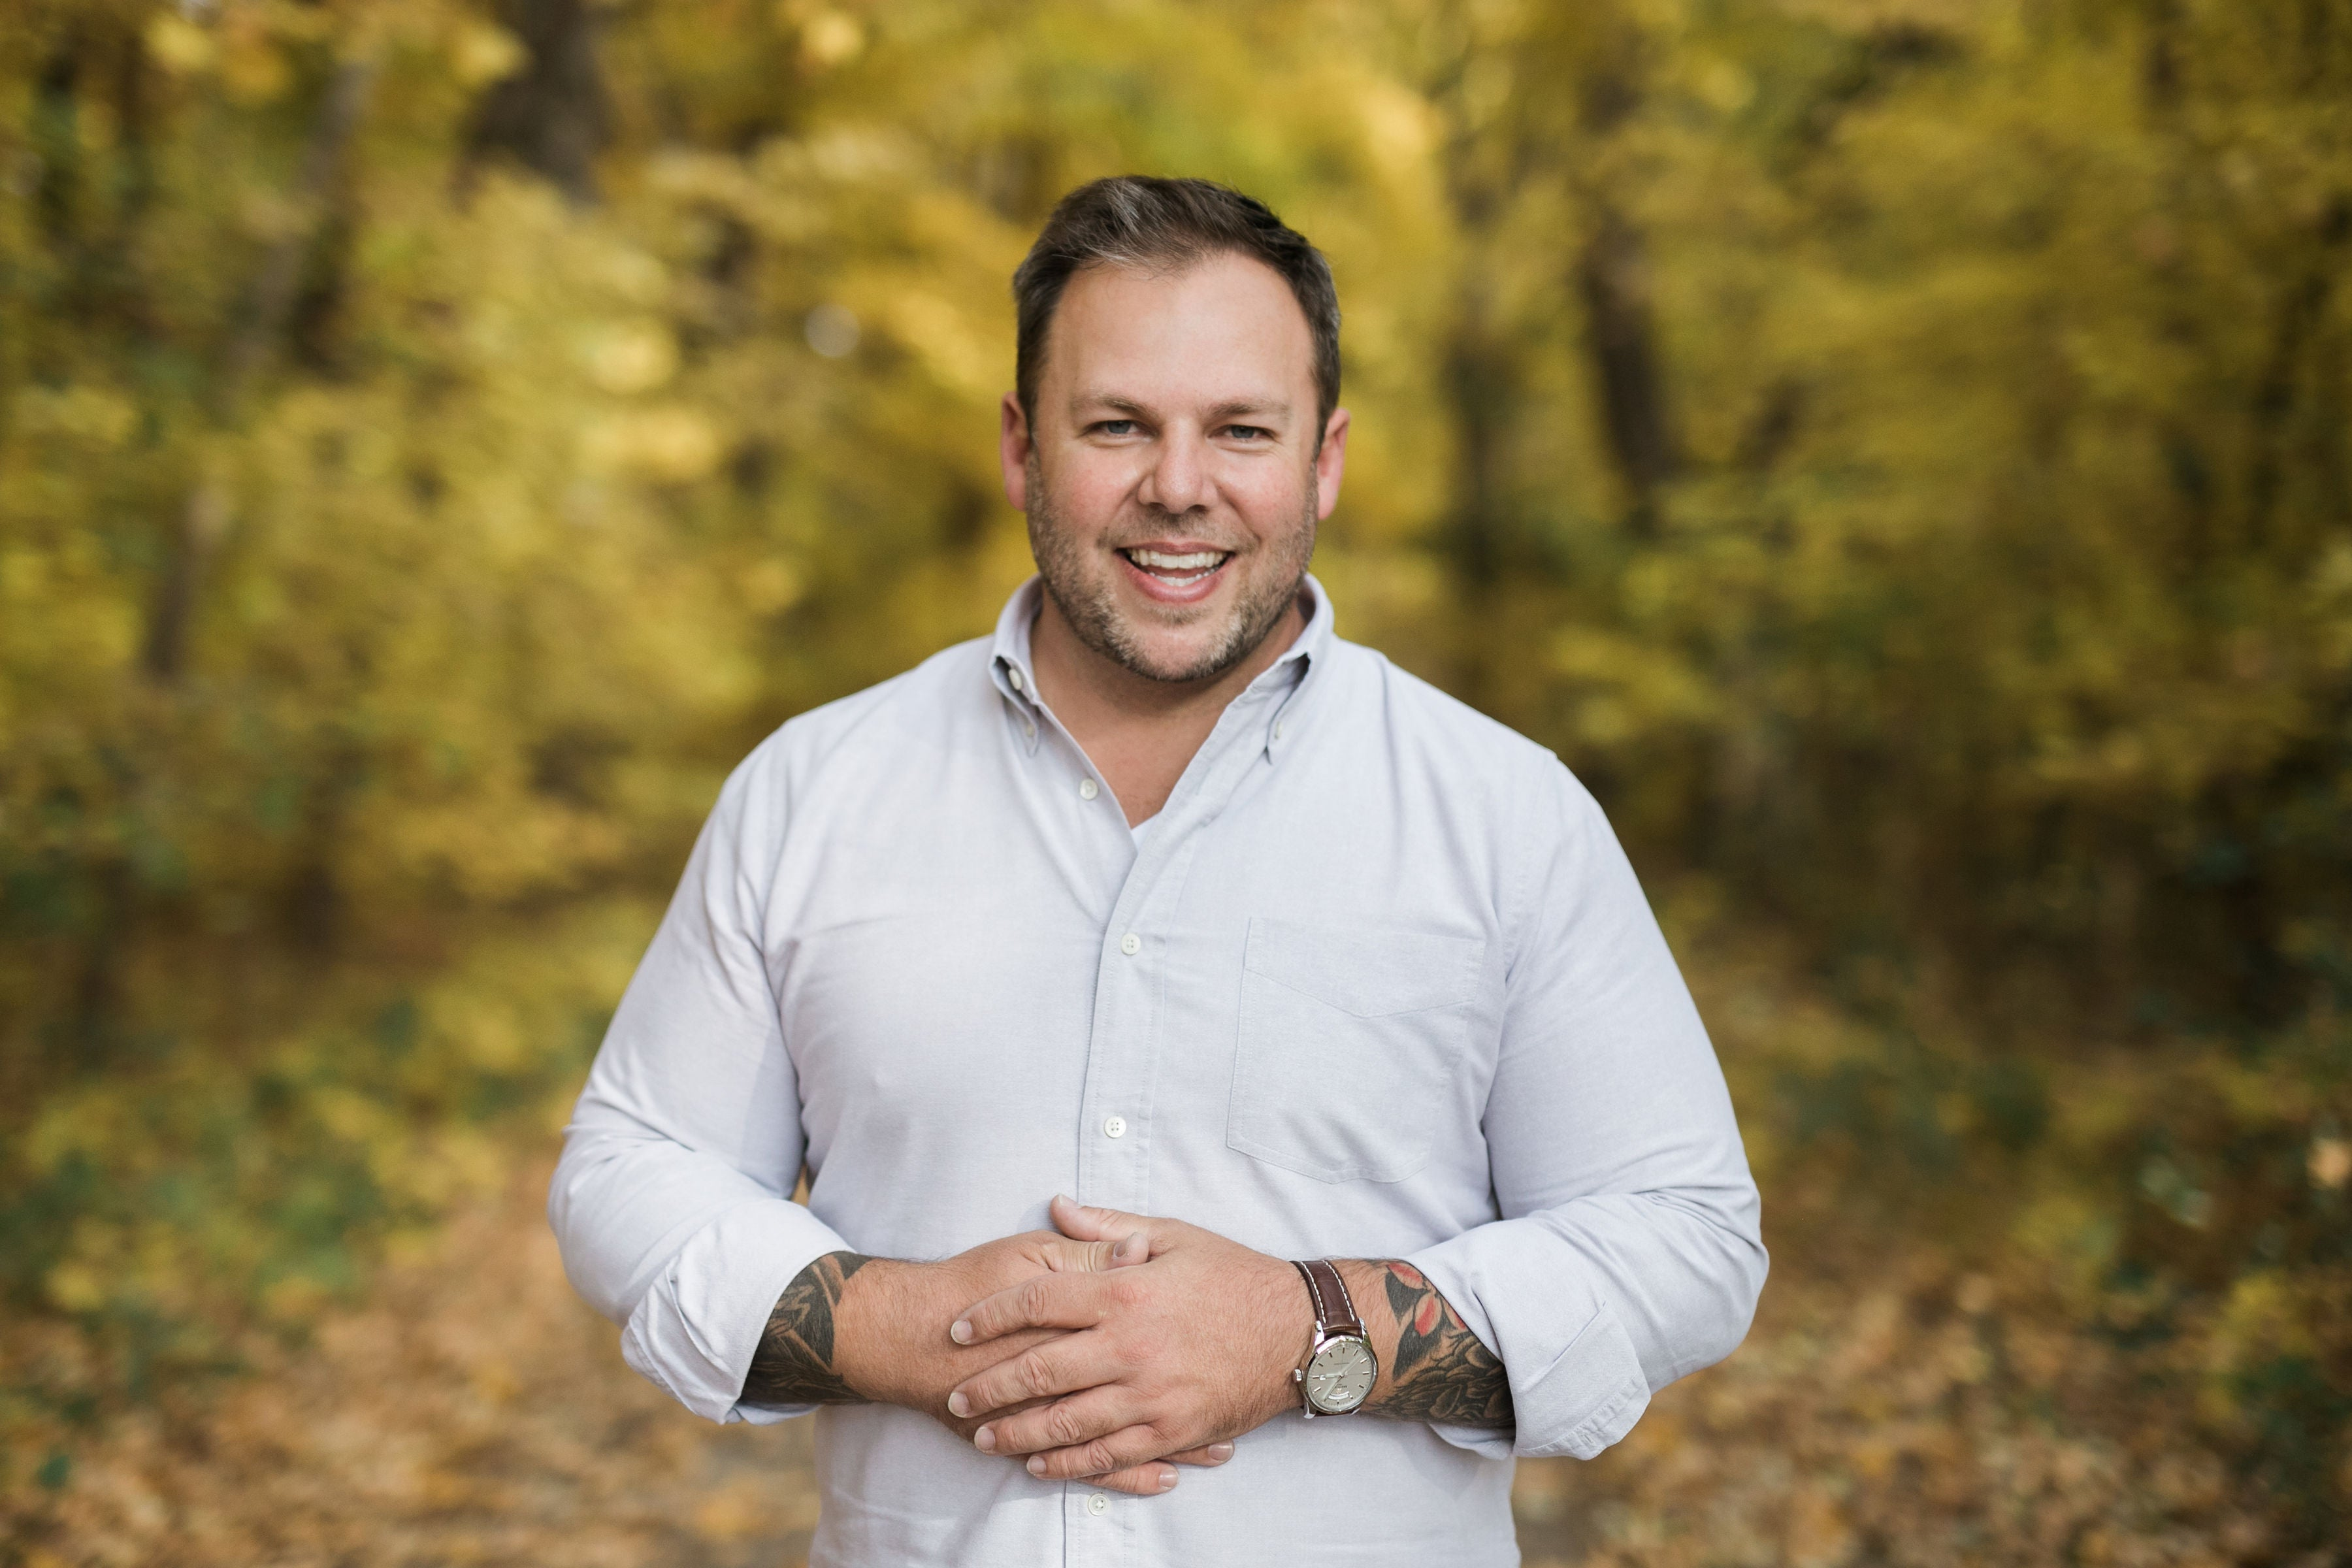 Kyle LaFond, Founder of American Provenanve